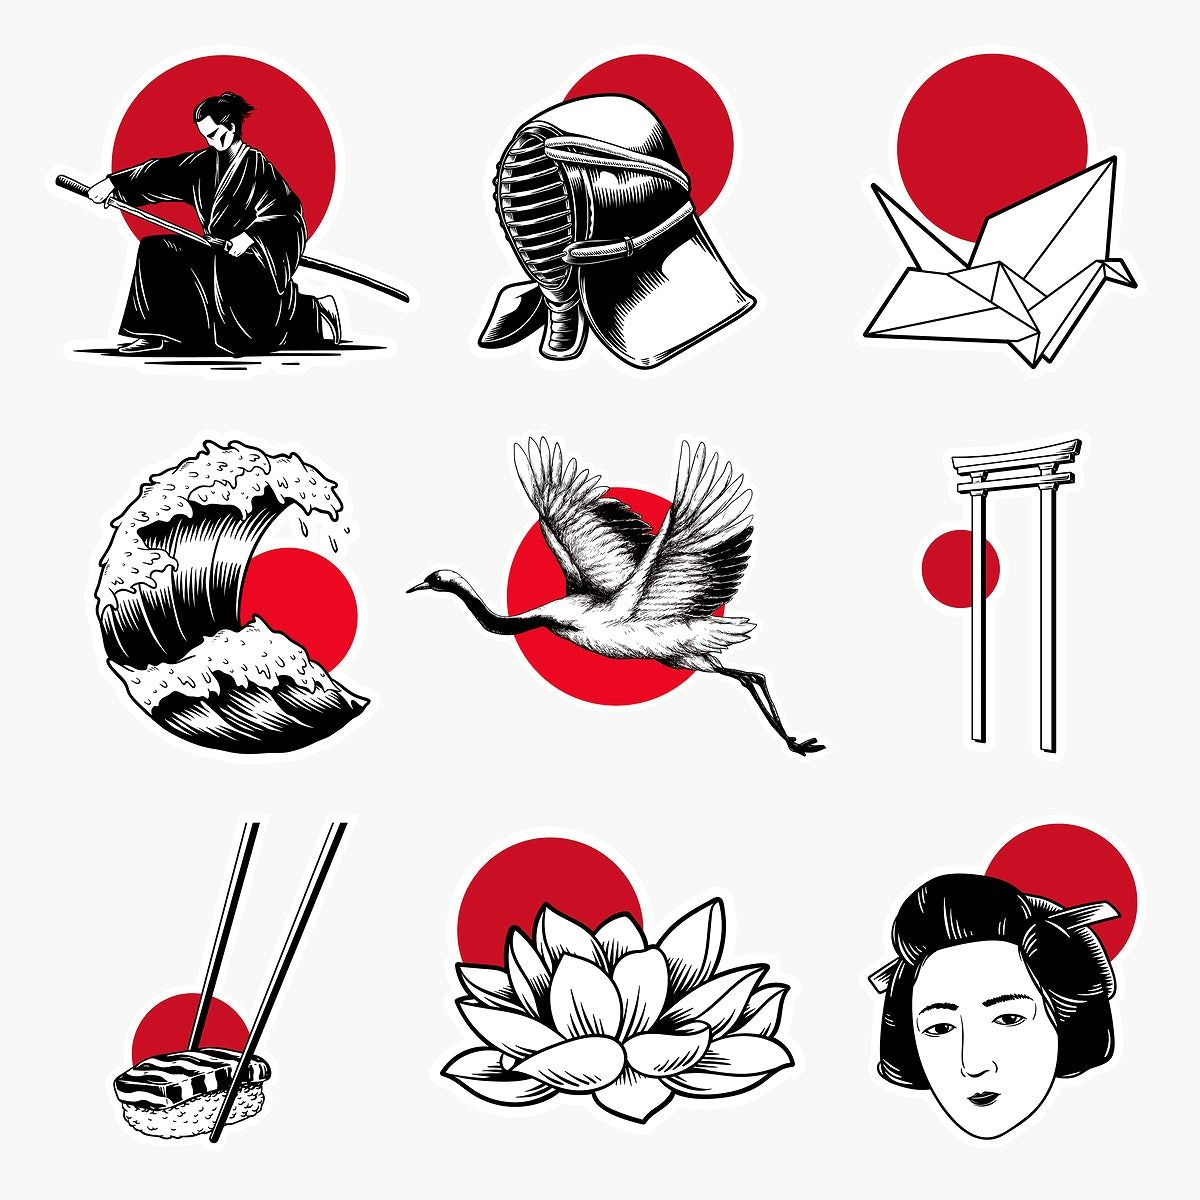 Traditional Japanese Sticker Design Elements Set Free Image By Rawpixel Com Tvzsu In 2020 Japanese Tattoo Art Japanese Illustration Japanese Tattoo